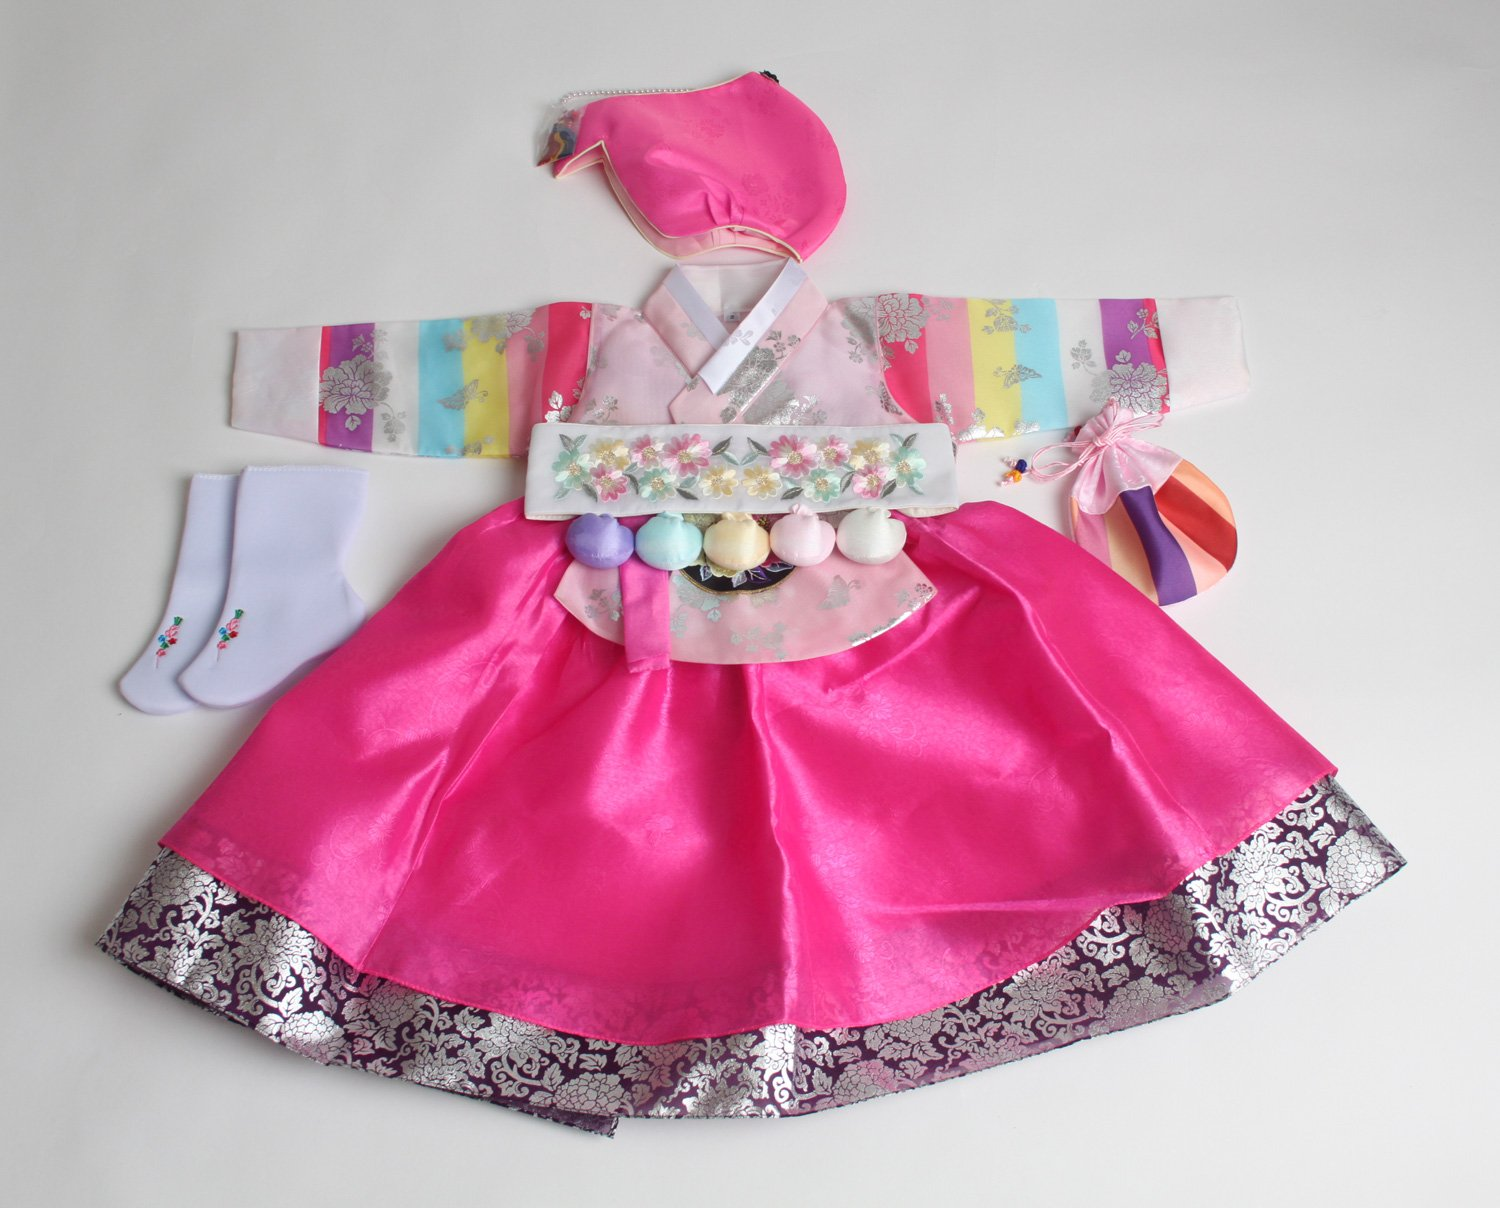 Korean hanbok girls DOLBOK 1st birthday traditional costumes hb062 by hanbok store (Image #1)